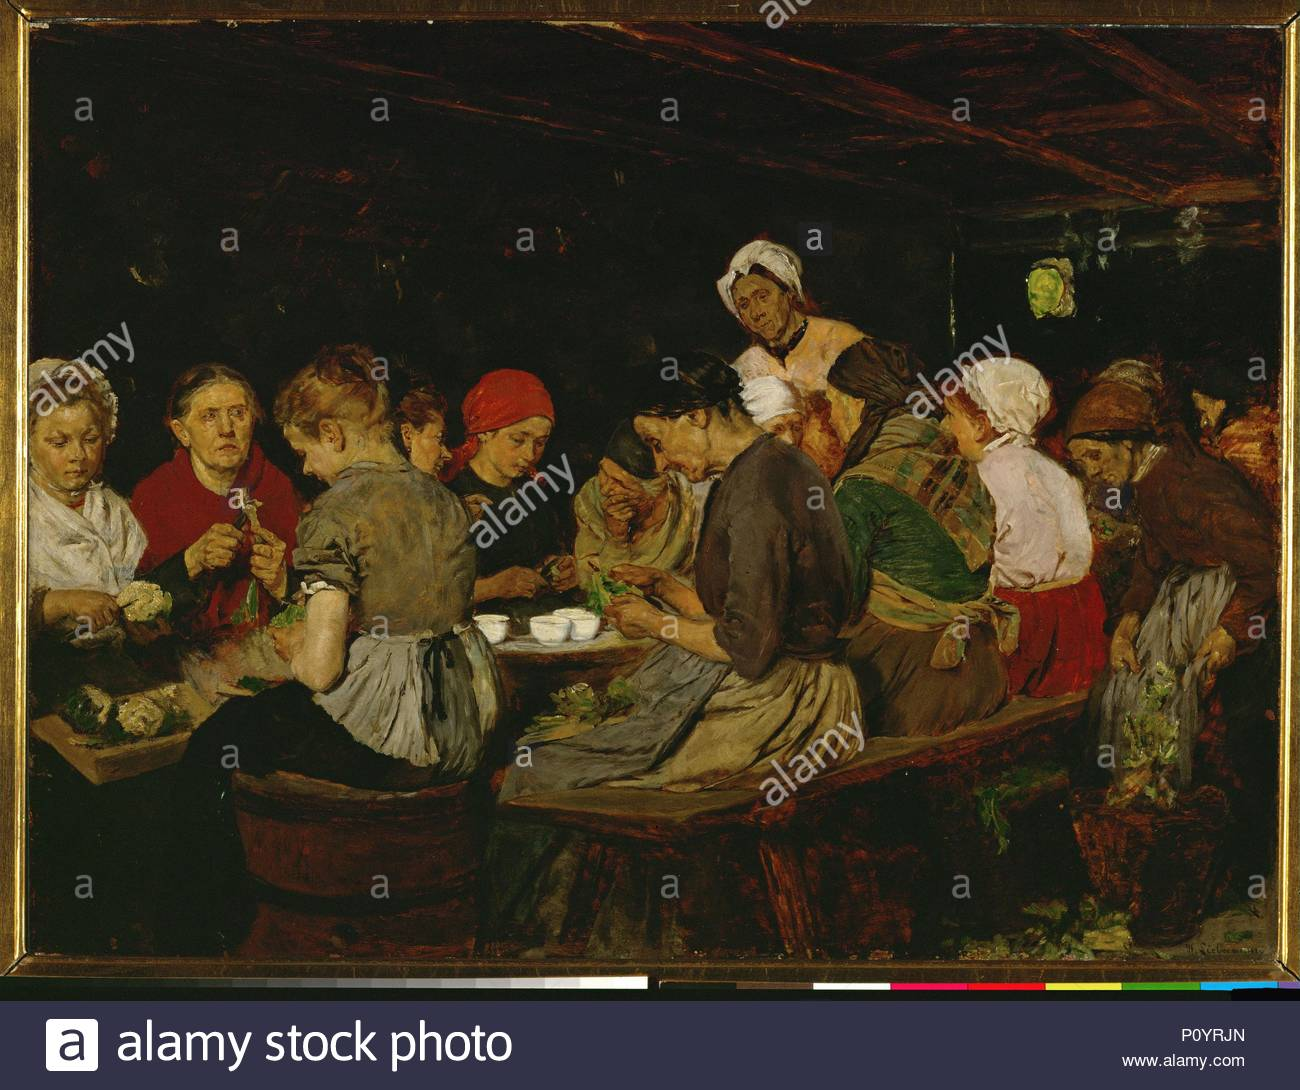 Women in a canning factory Oil on mahogany wood (1879) 49 x 65.3 cm. Author: Max Liebermann (1847-1935). Location: Museum der Bildenden Kuenste, Leipzig, Germany. - Stock Image